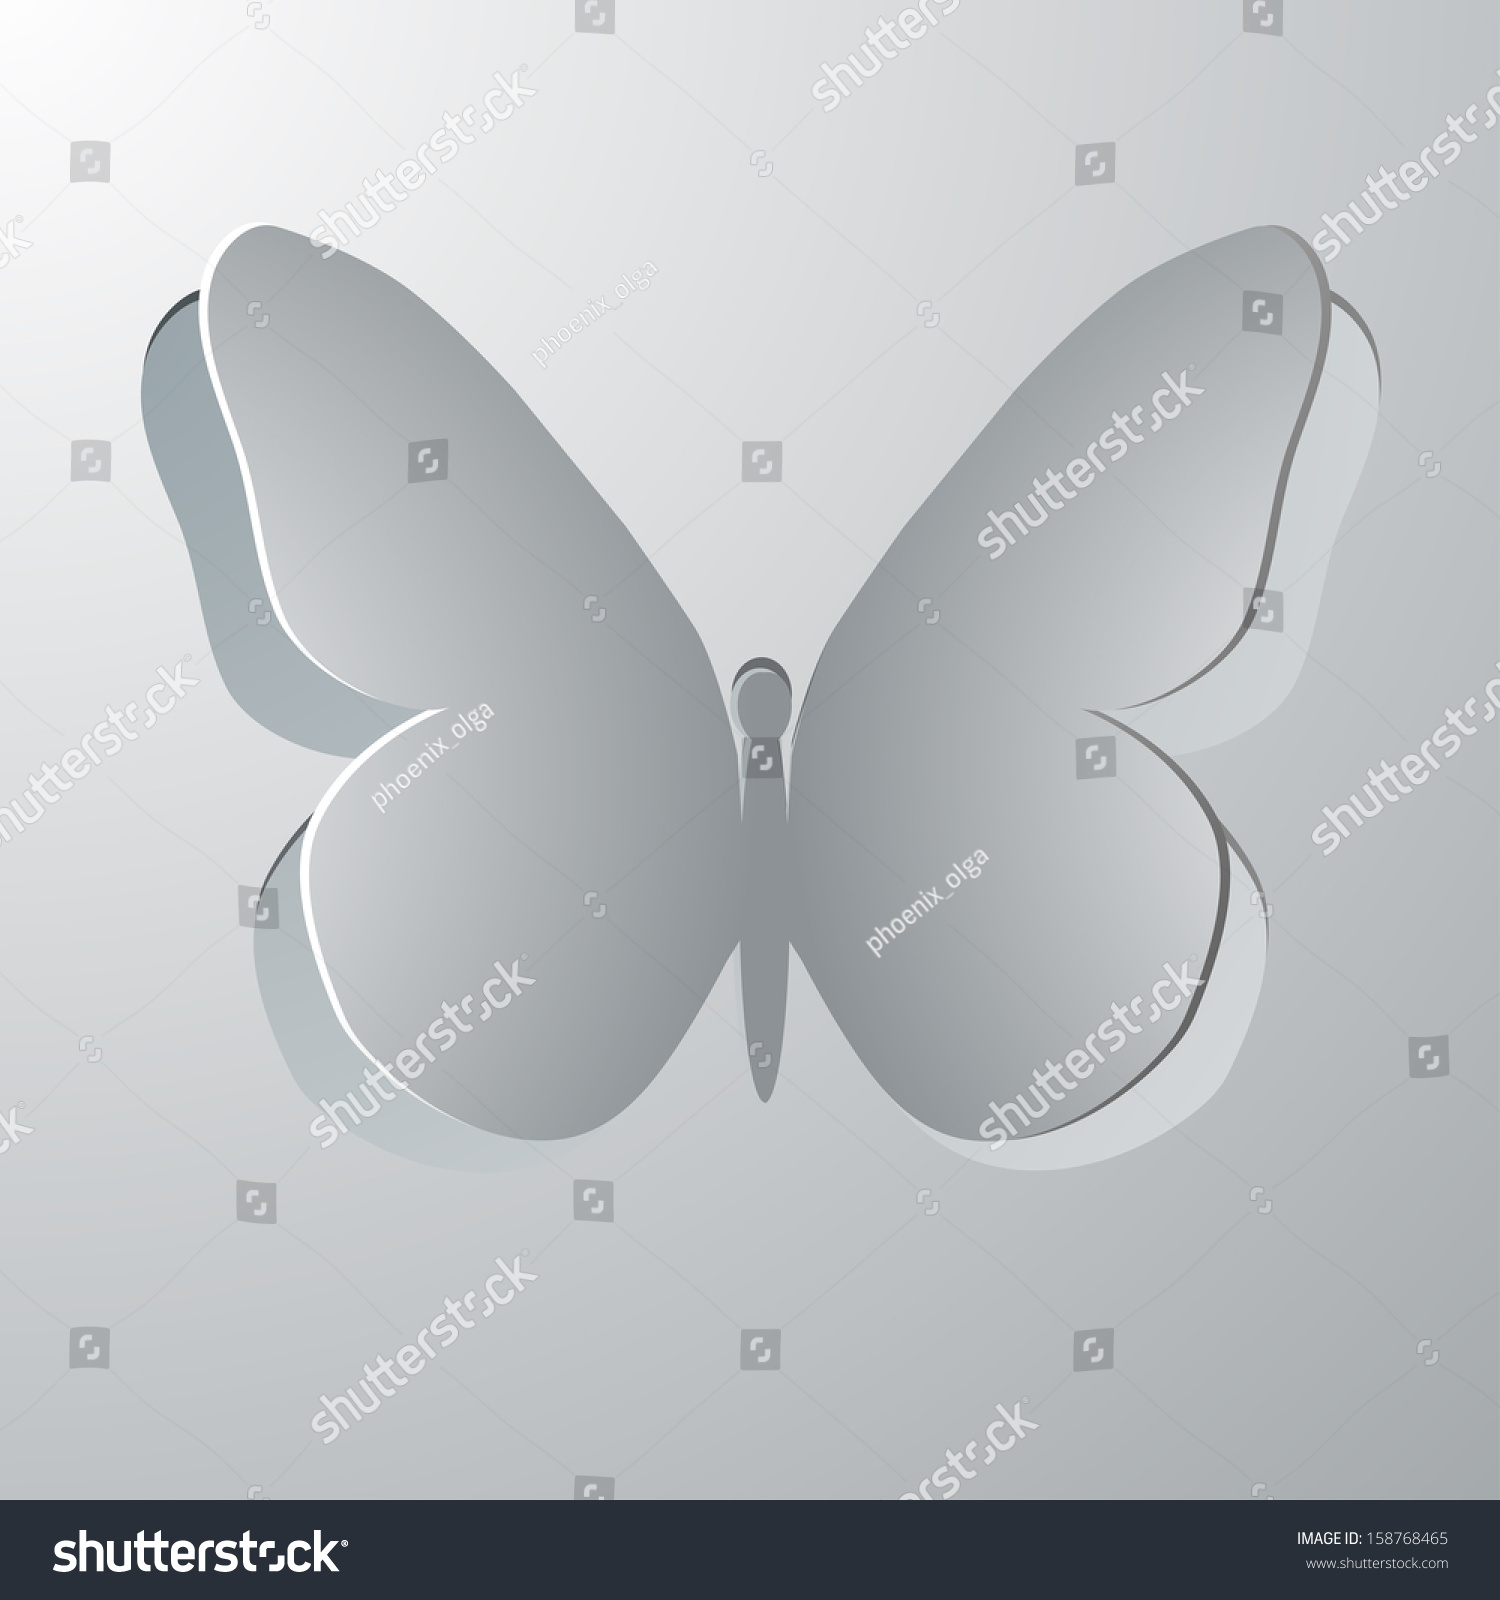 Butterfly decorative greeting card paper butterfly stock vector butterfly decorative greeting card with paper butterfly symbol butterfly cut out of paper biocorpaavc Image collections